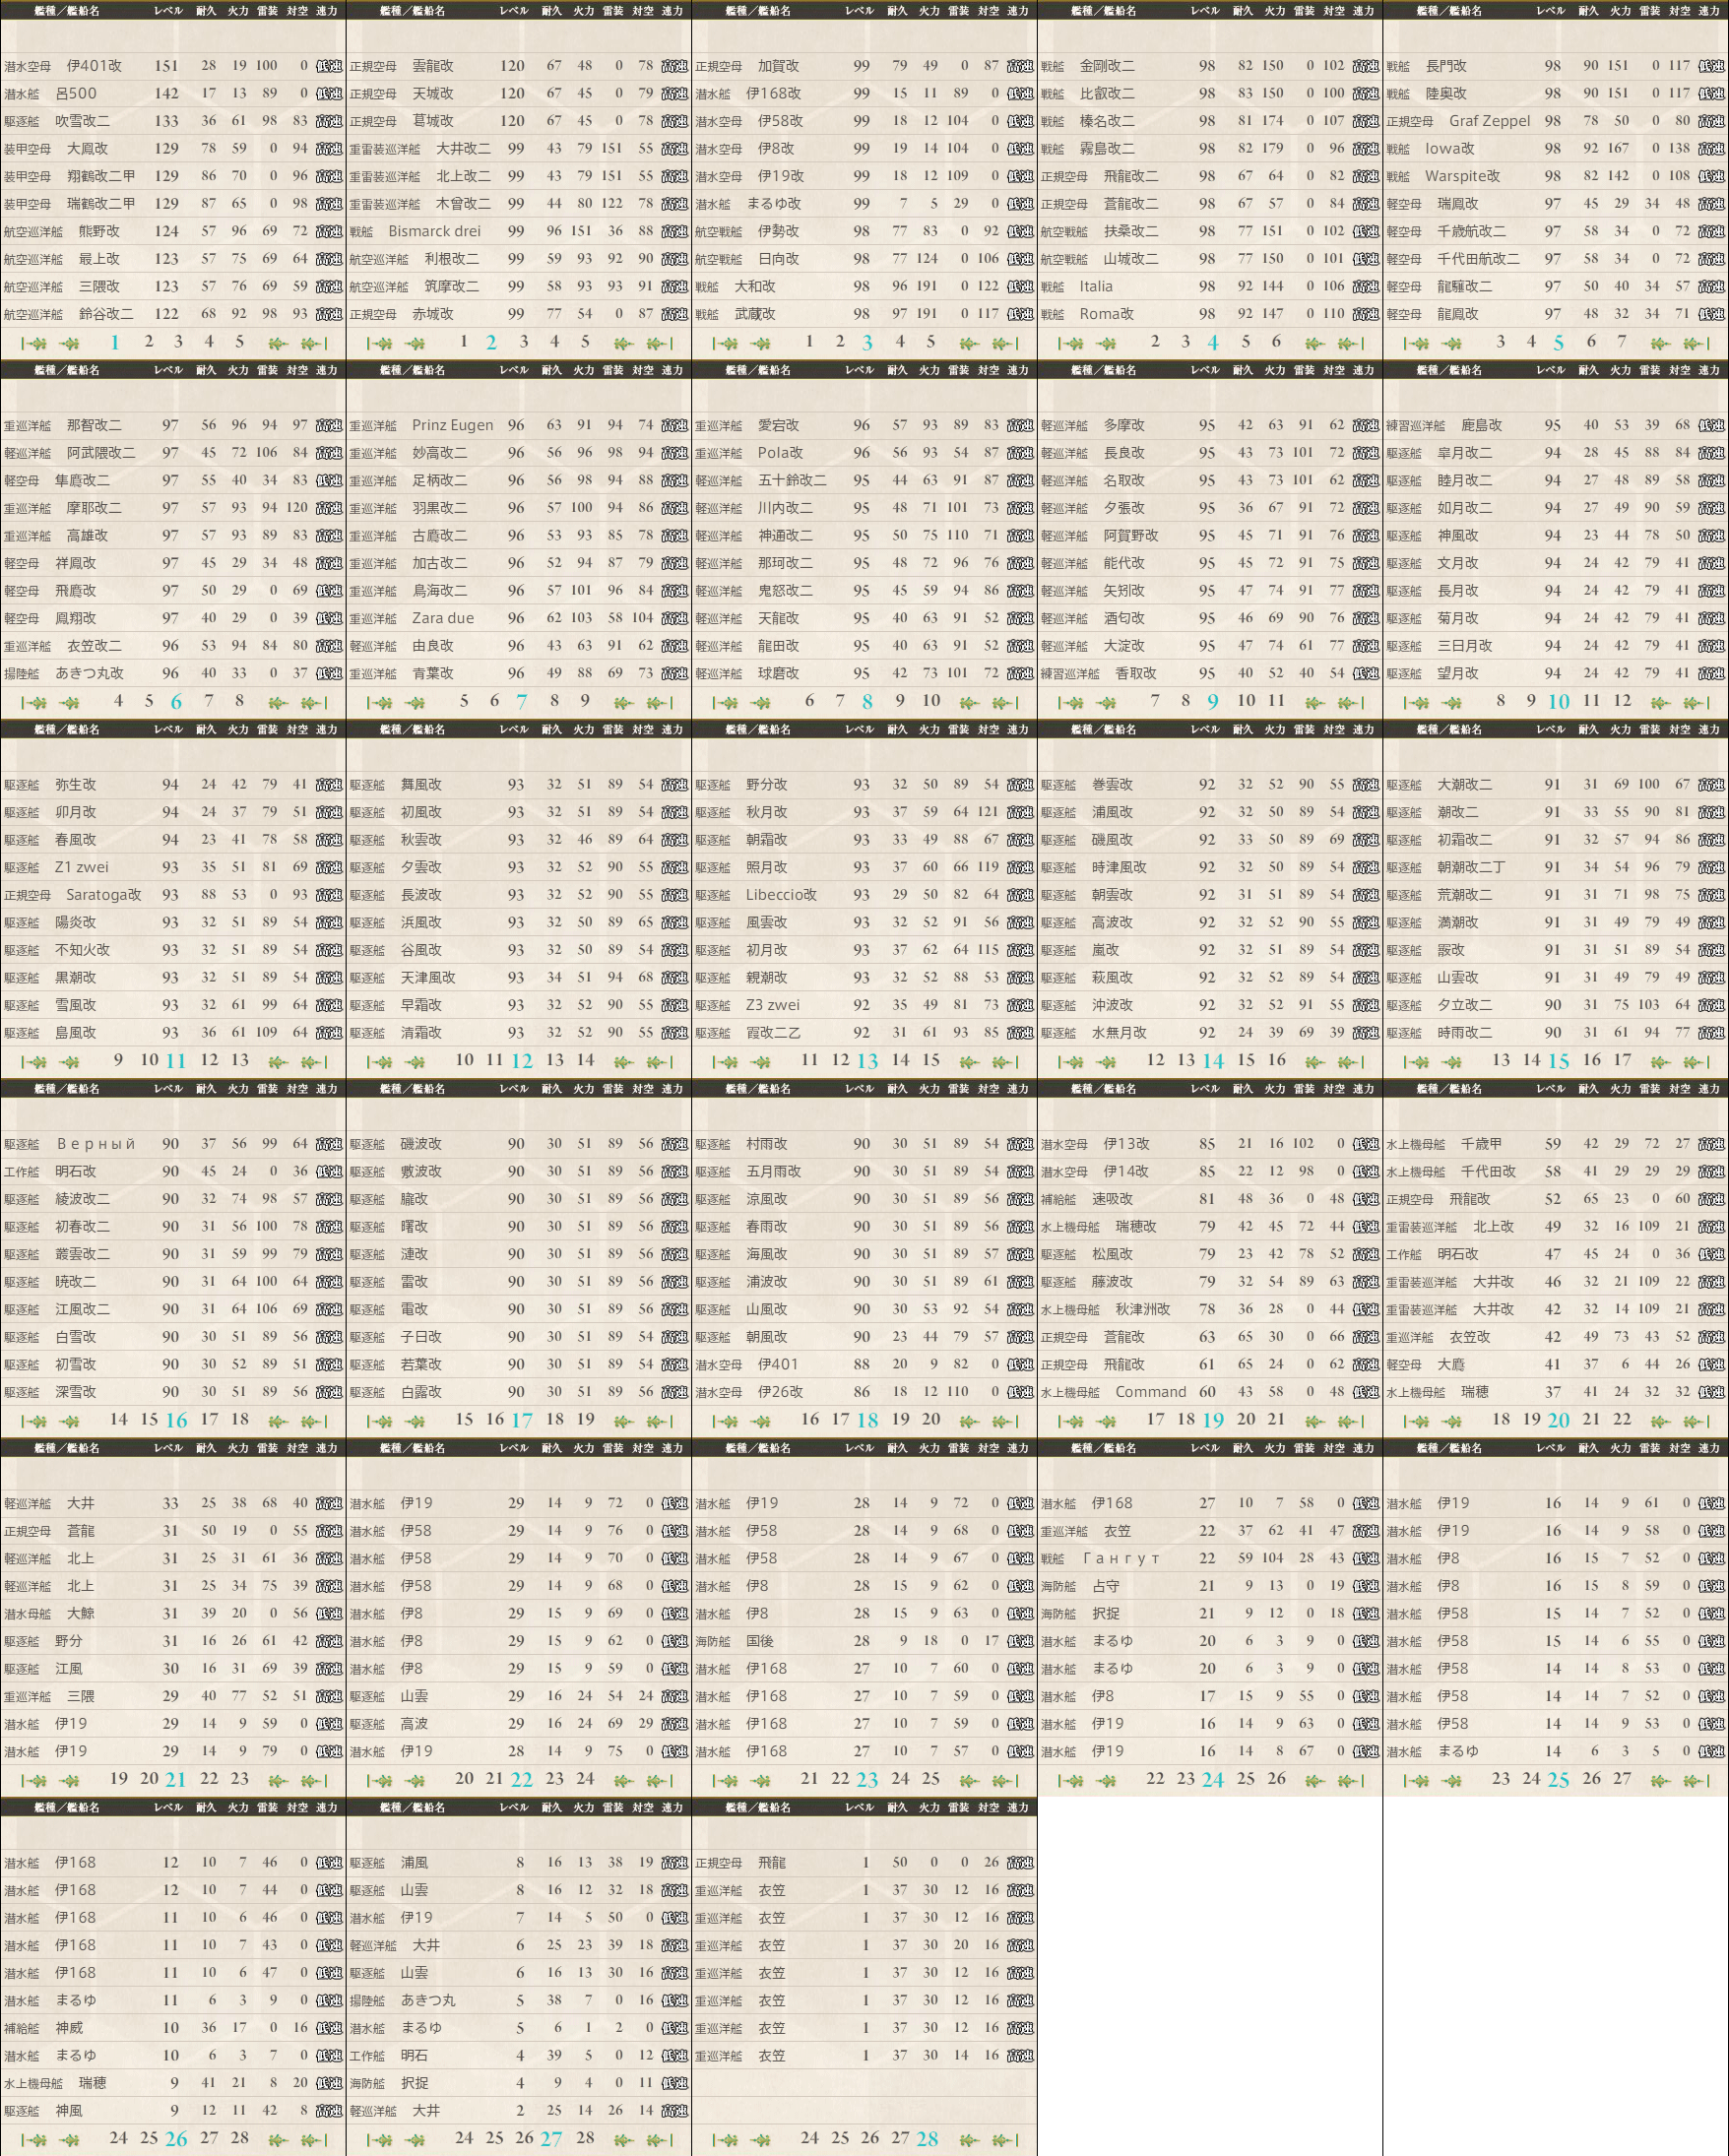 data.kancolle.levelsort.20170528.png